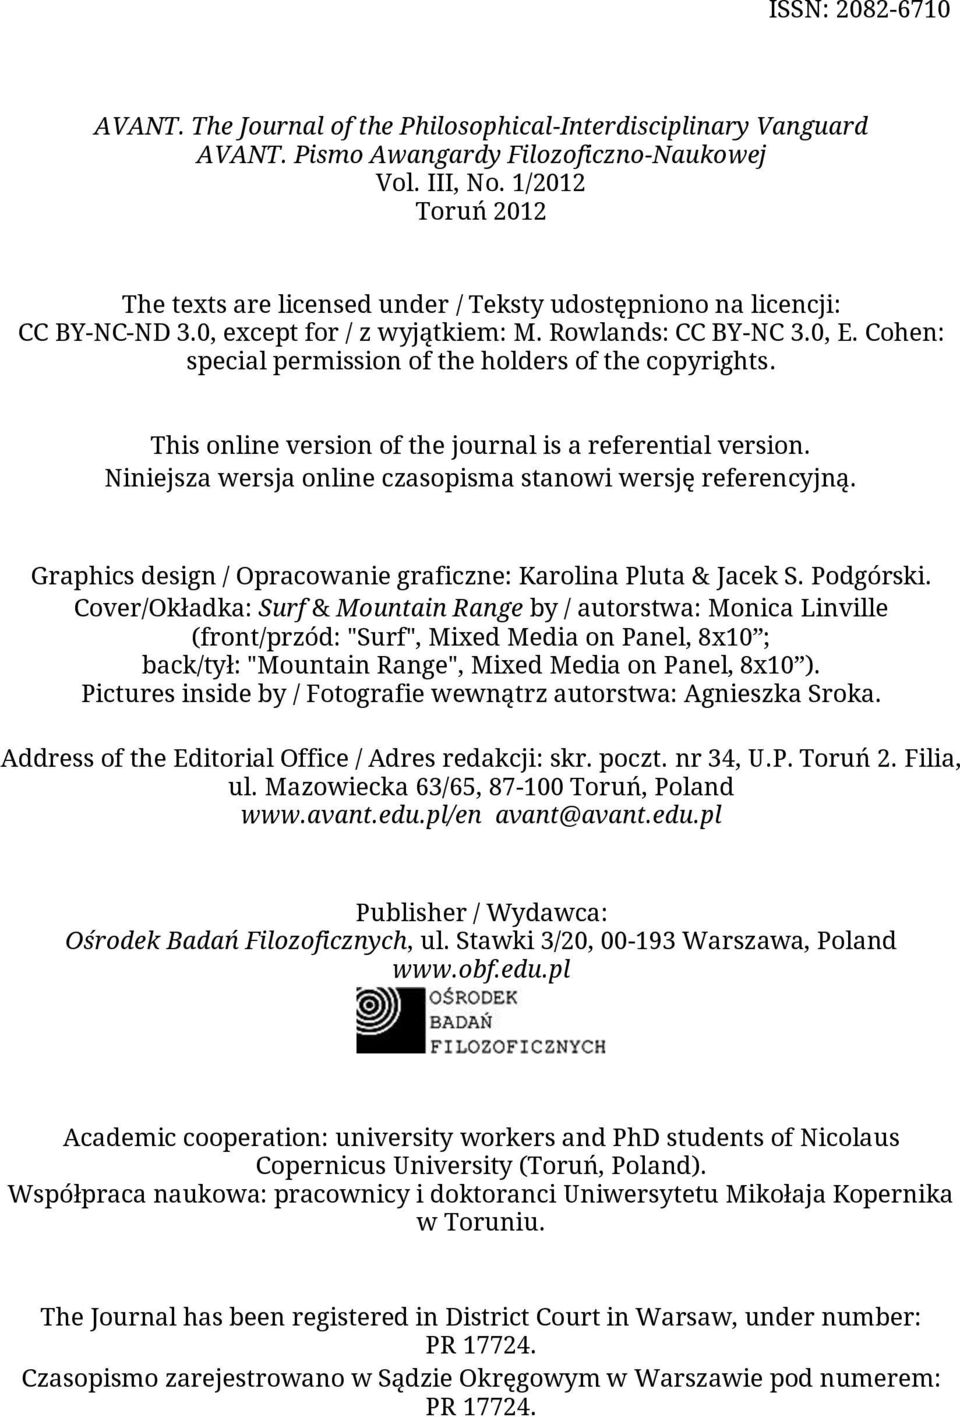 Cohen: special permission of the holders of the copyrights. This online version of the journal is a referential version. Niniejsza wersja online czasopisma stanowi wersję referencyjną.